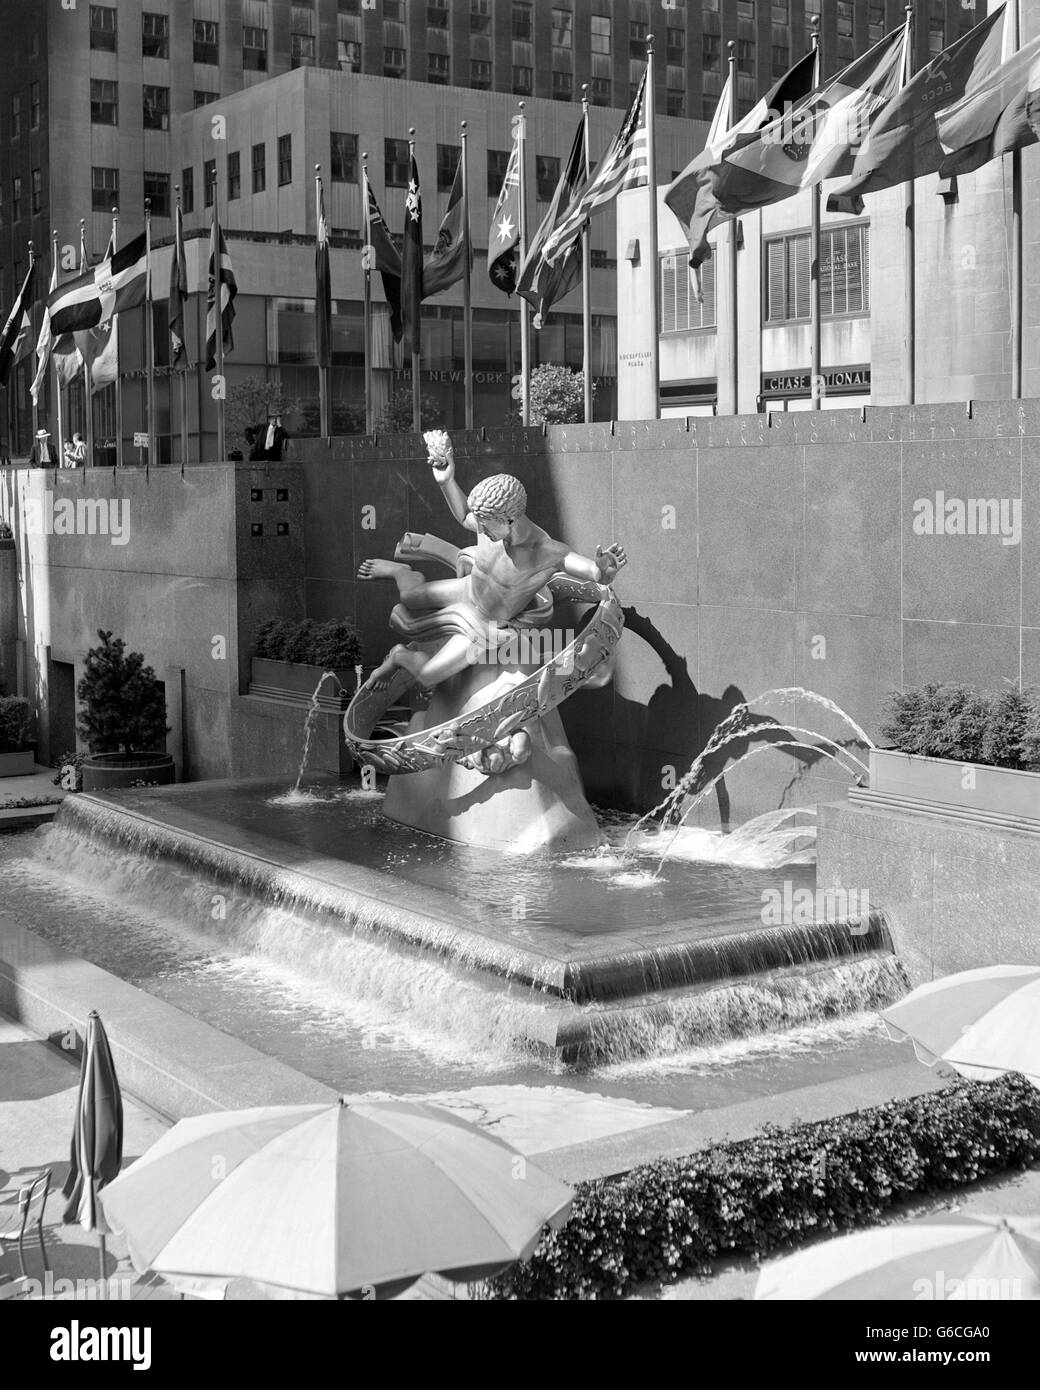 1950s ROCKEFELLER CENTER PROMETHEUS FOUNTAIN BY PAUL MANSHIP AND UNITED NATIONS FLAGS NEW YORK CITY NY USA - Stock Image